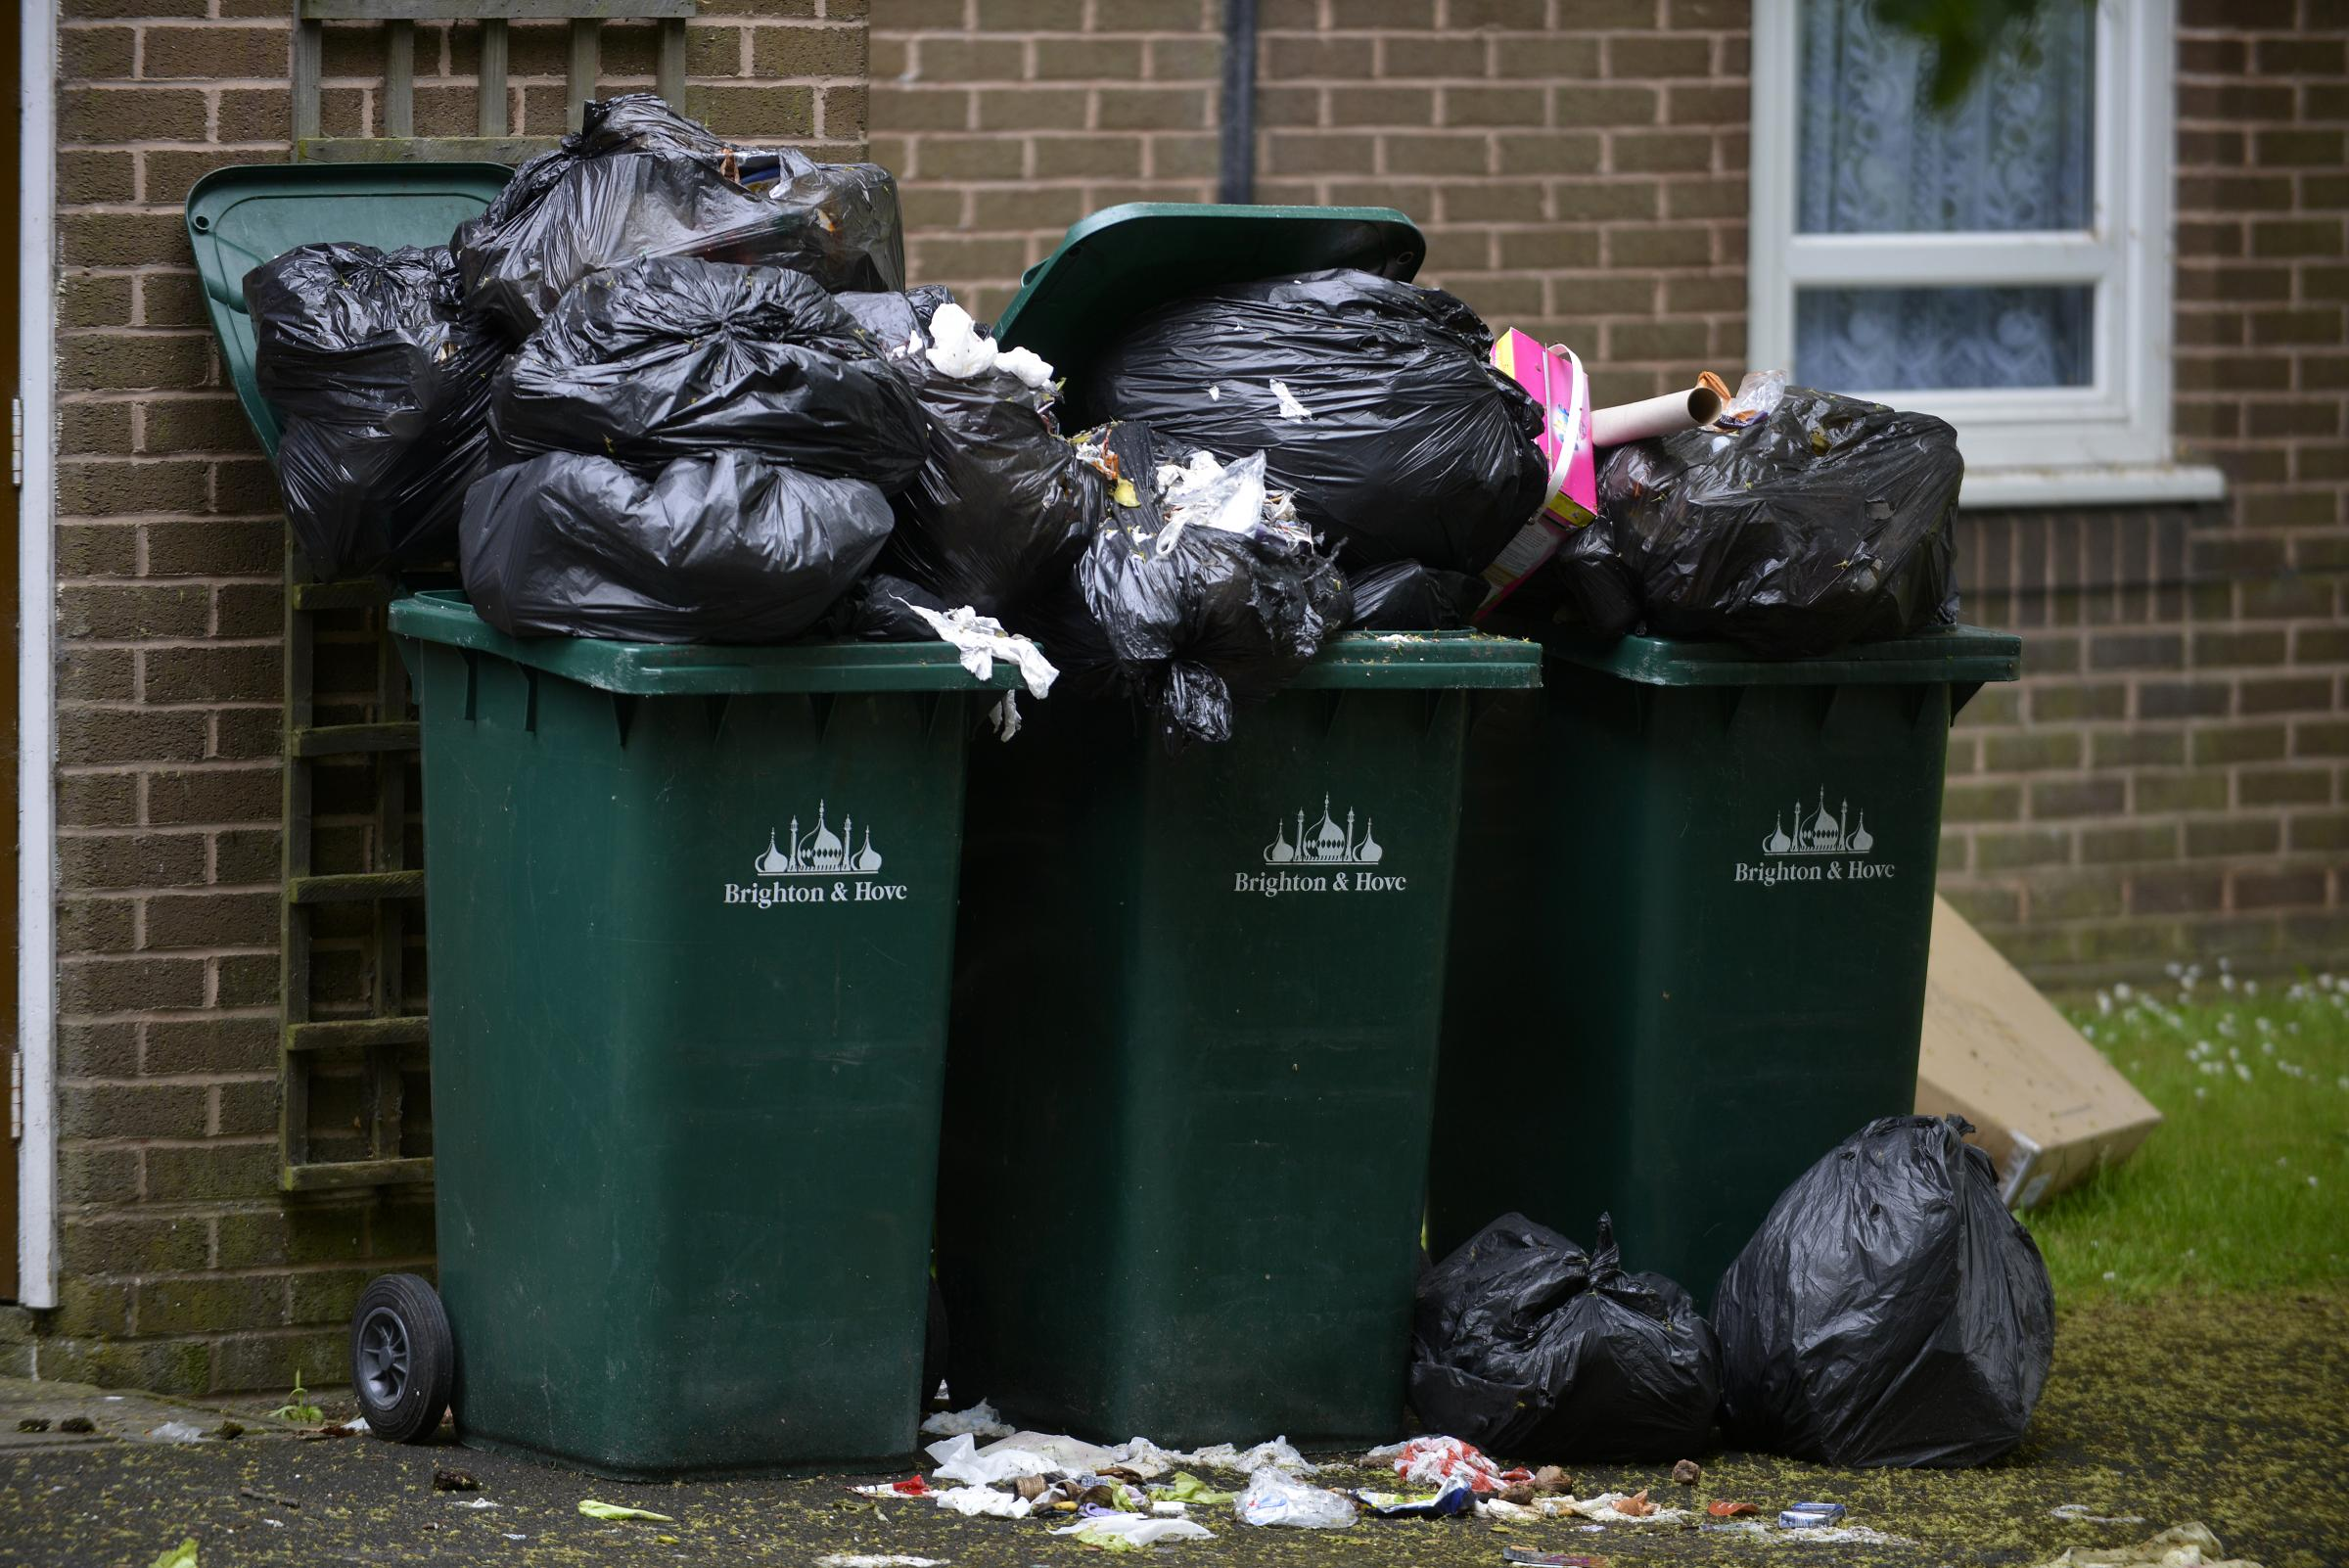 Last year's bin strike saw the streets strewn with rubbish